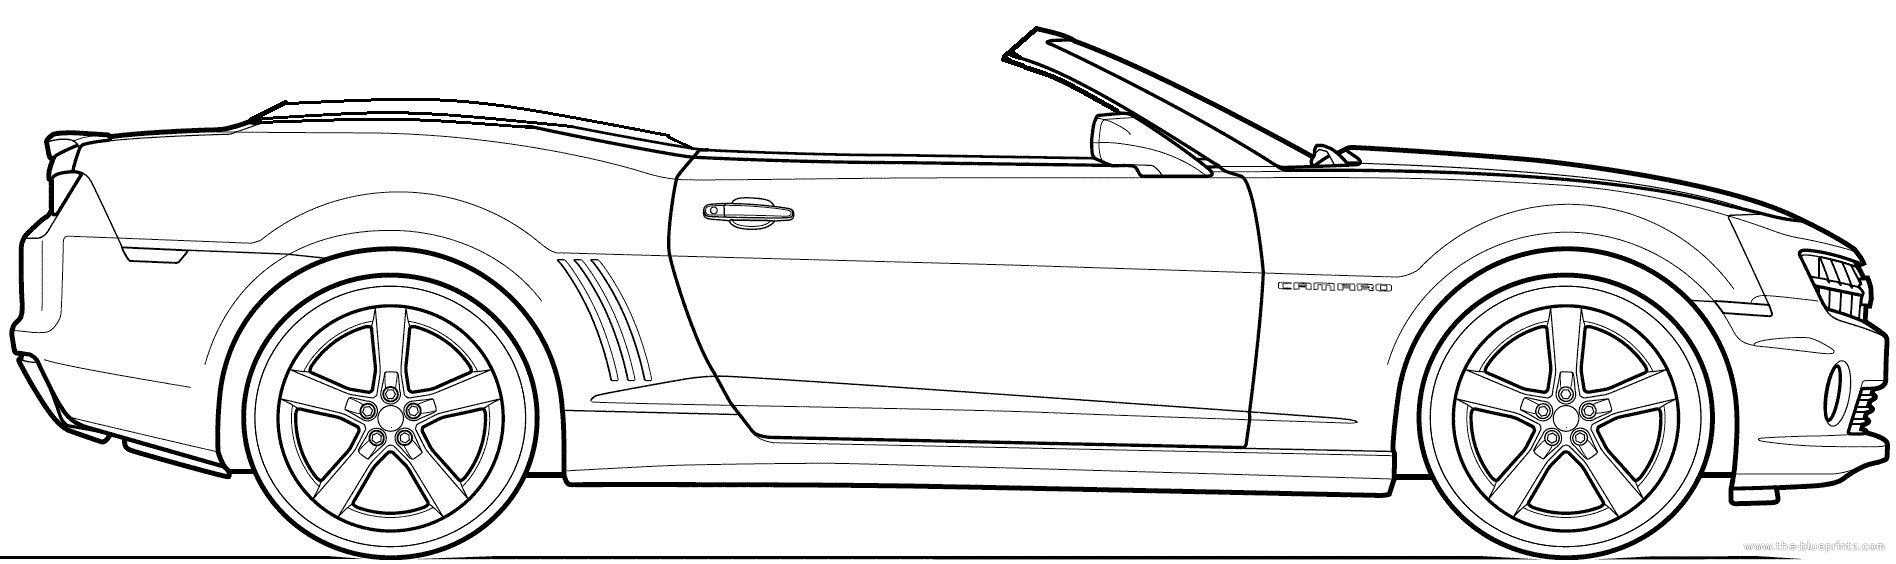 Chevy camaro coloring page coloring home for Convertible car coloring pages